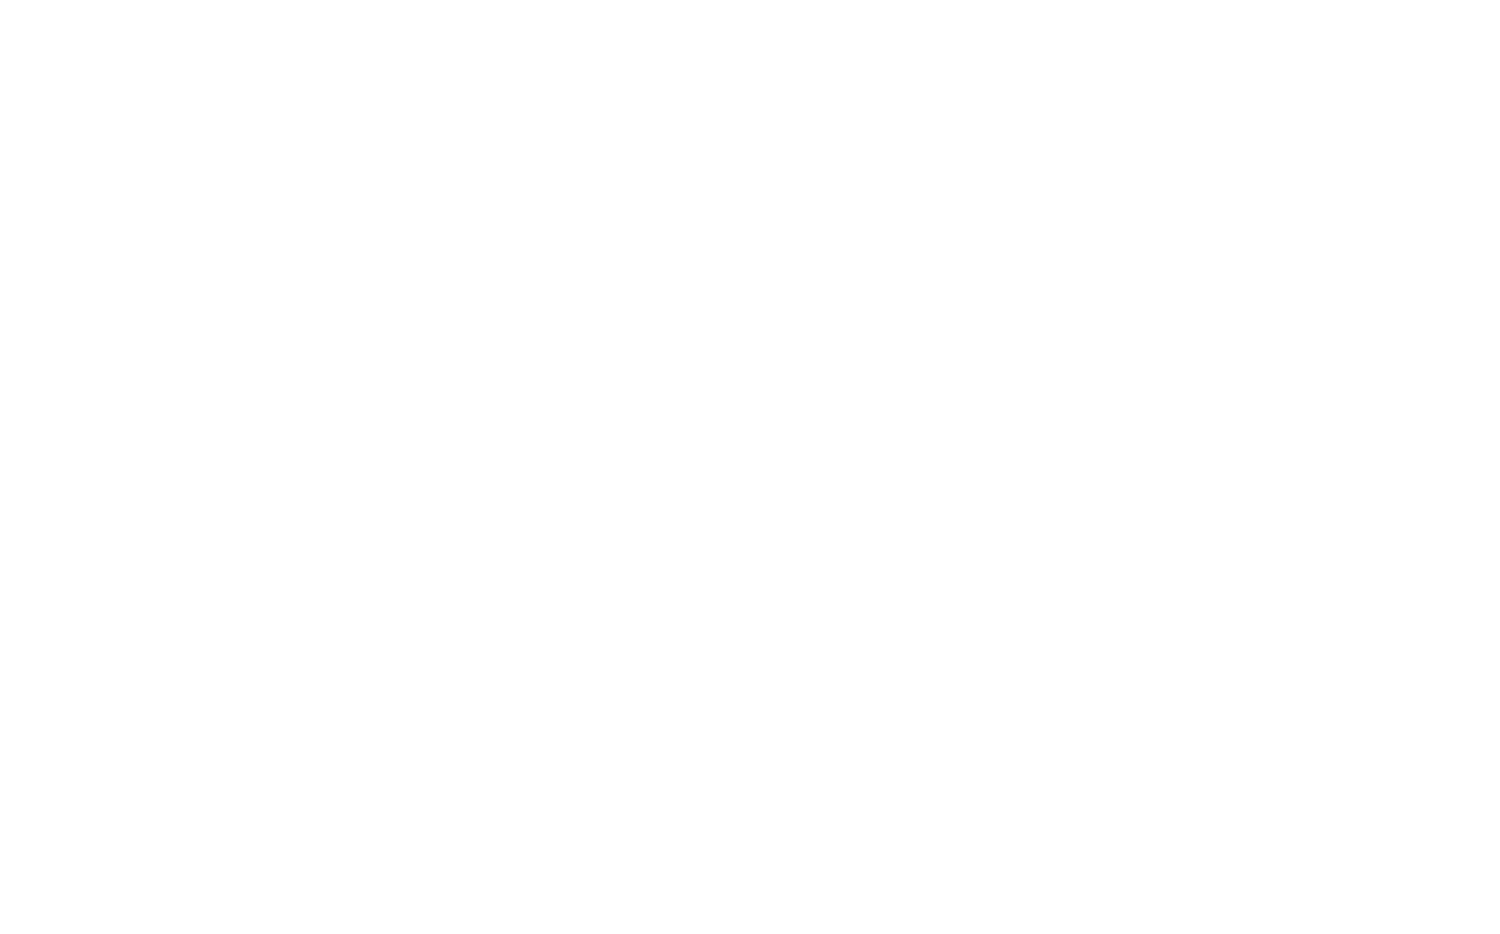 United Wesleyan Church